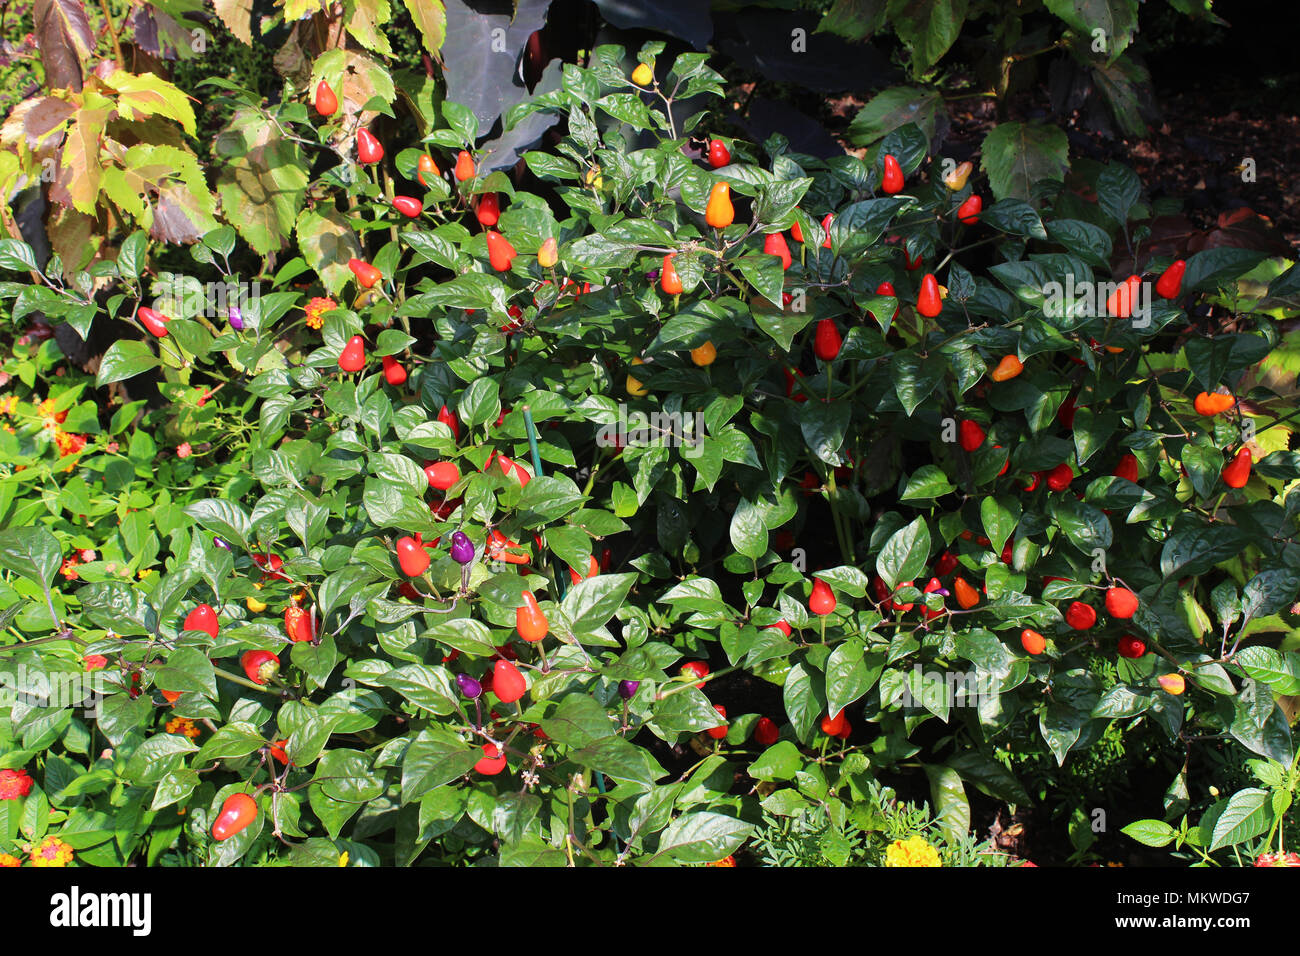 Pepper plants with orange, red, yellow and purple peppers - Stock Image